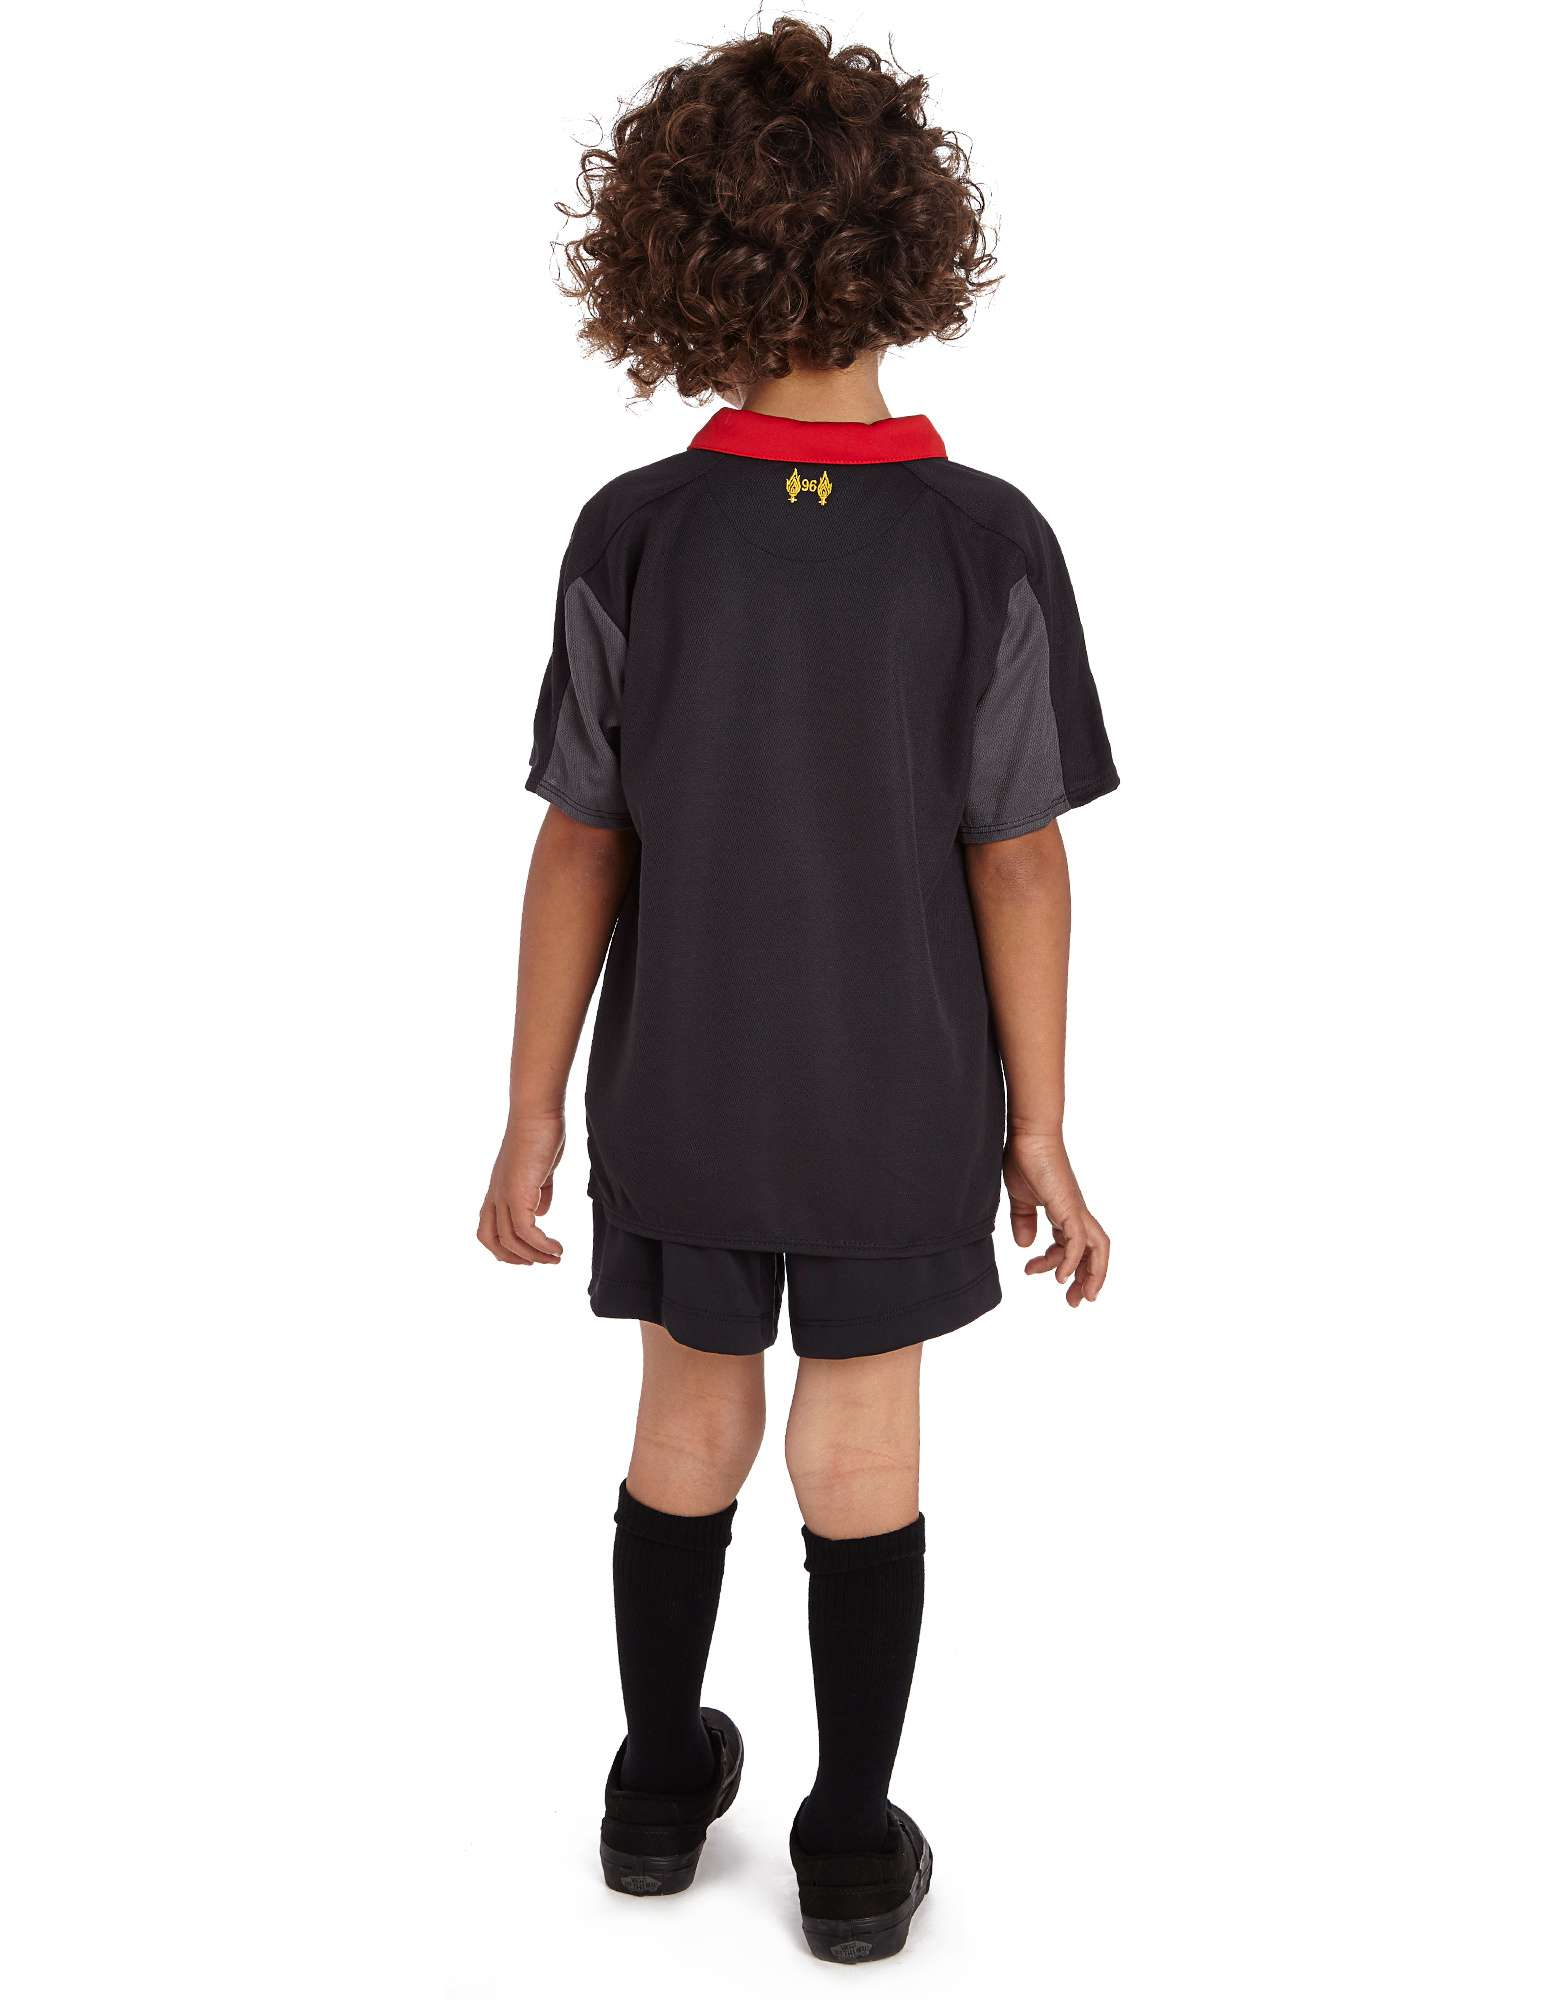 Warrior Sports Liverpool 2014 Infant Third Kit